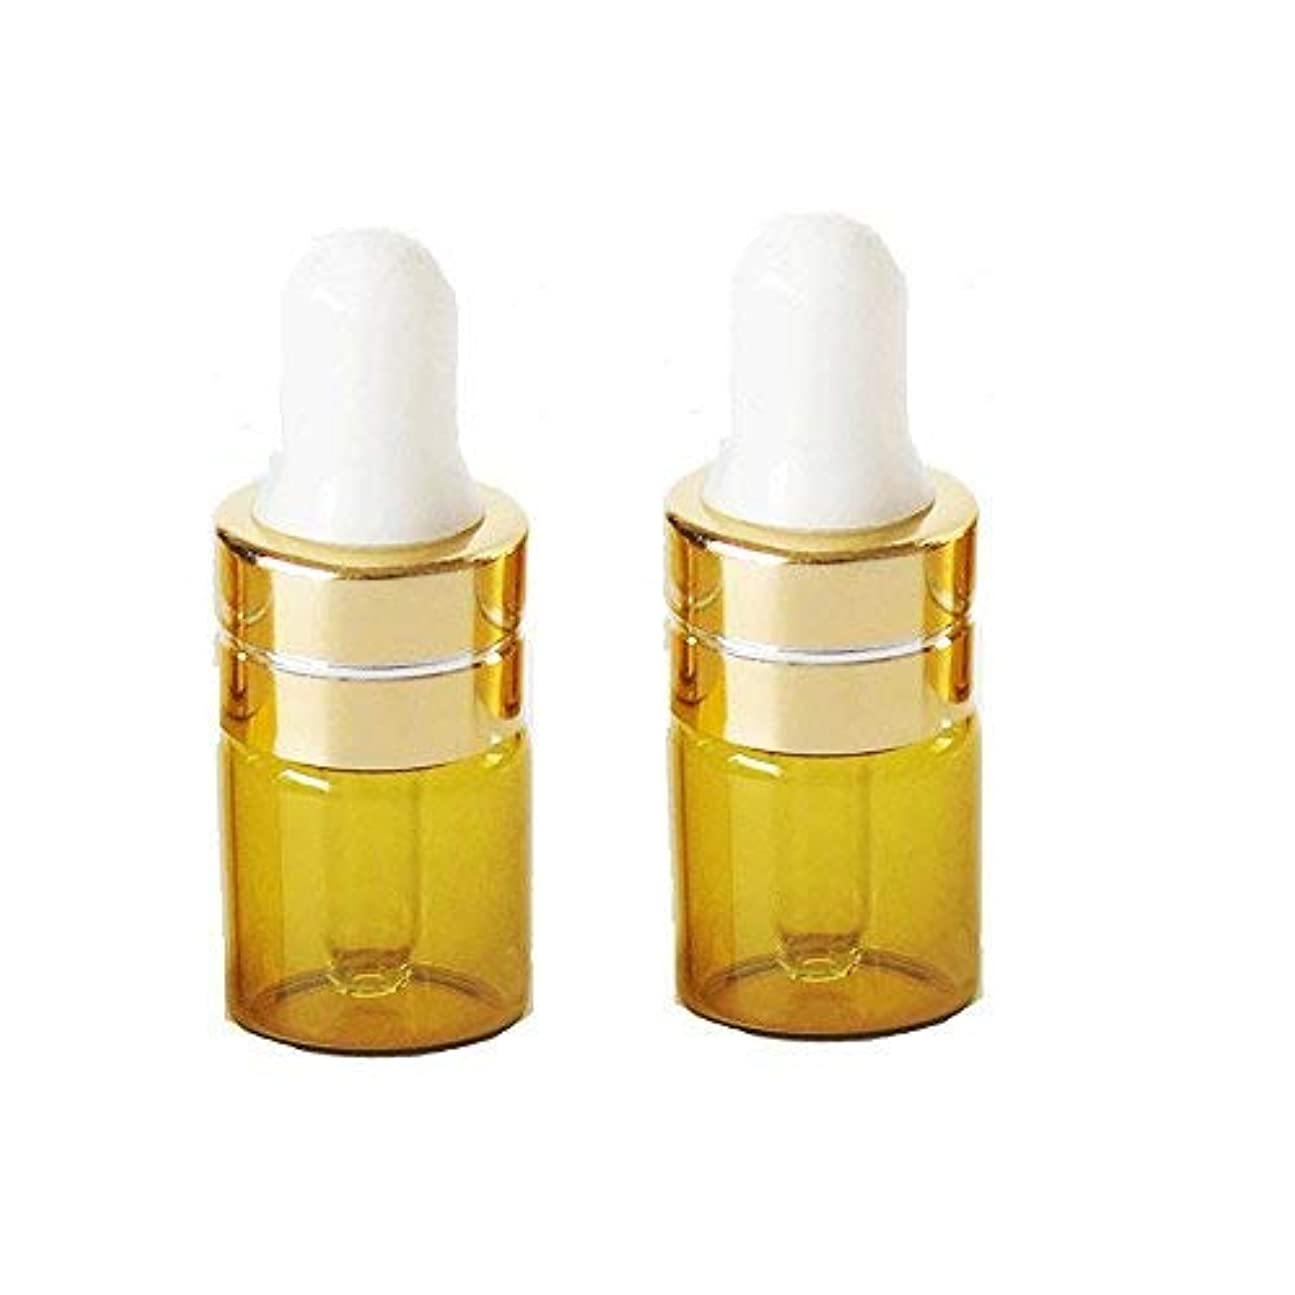 Grand Parfums 1ml Amber Glass Dropper Bottles with Gold Caps and White Bulb for Essential Oil, Serums, Makeups...